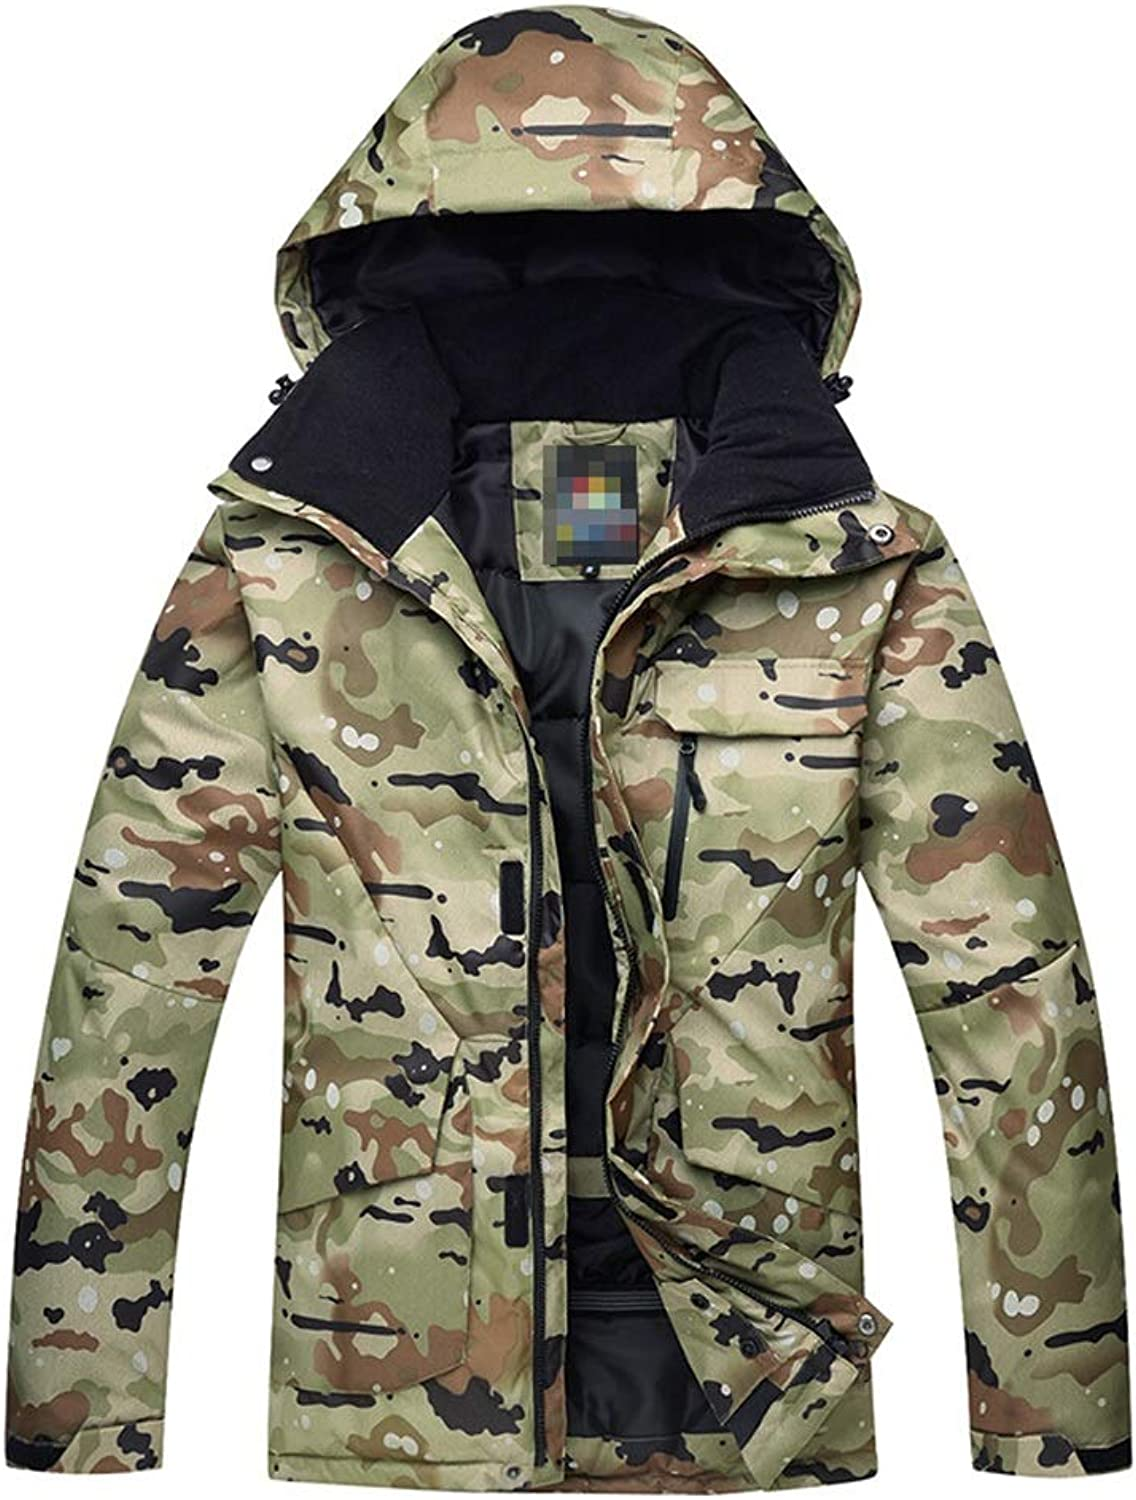 Khaki Camouflage Snowboard Coat with Hood, Breathable Warm,Comfortable and Warm